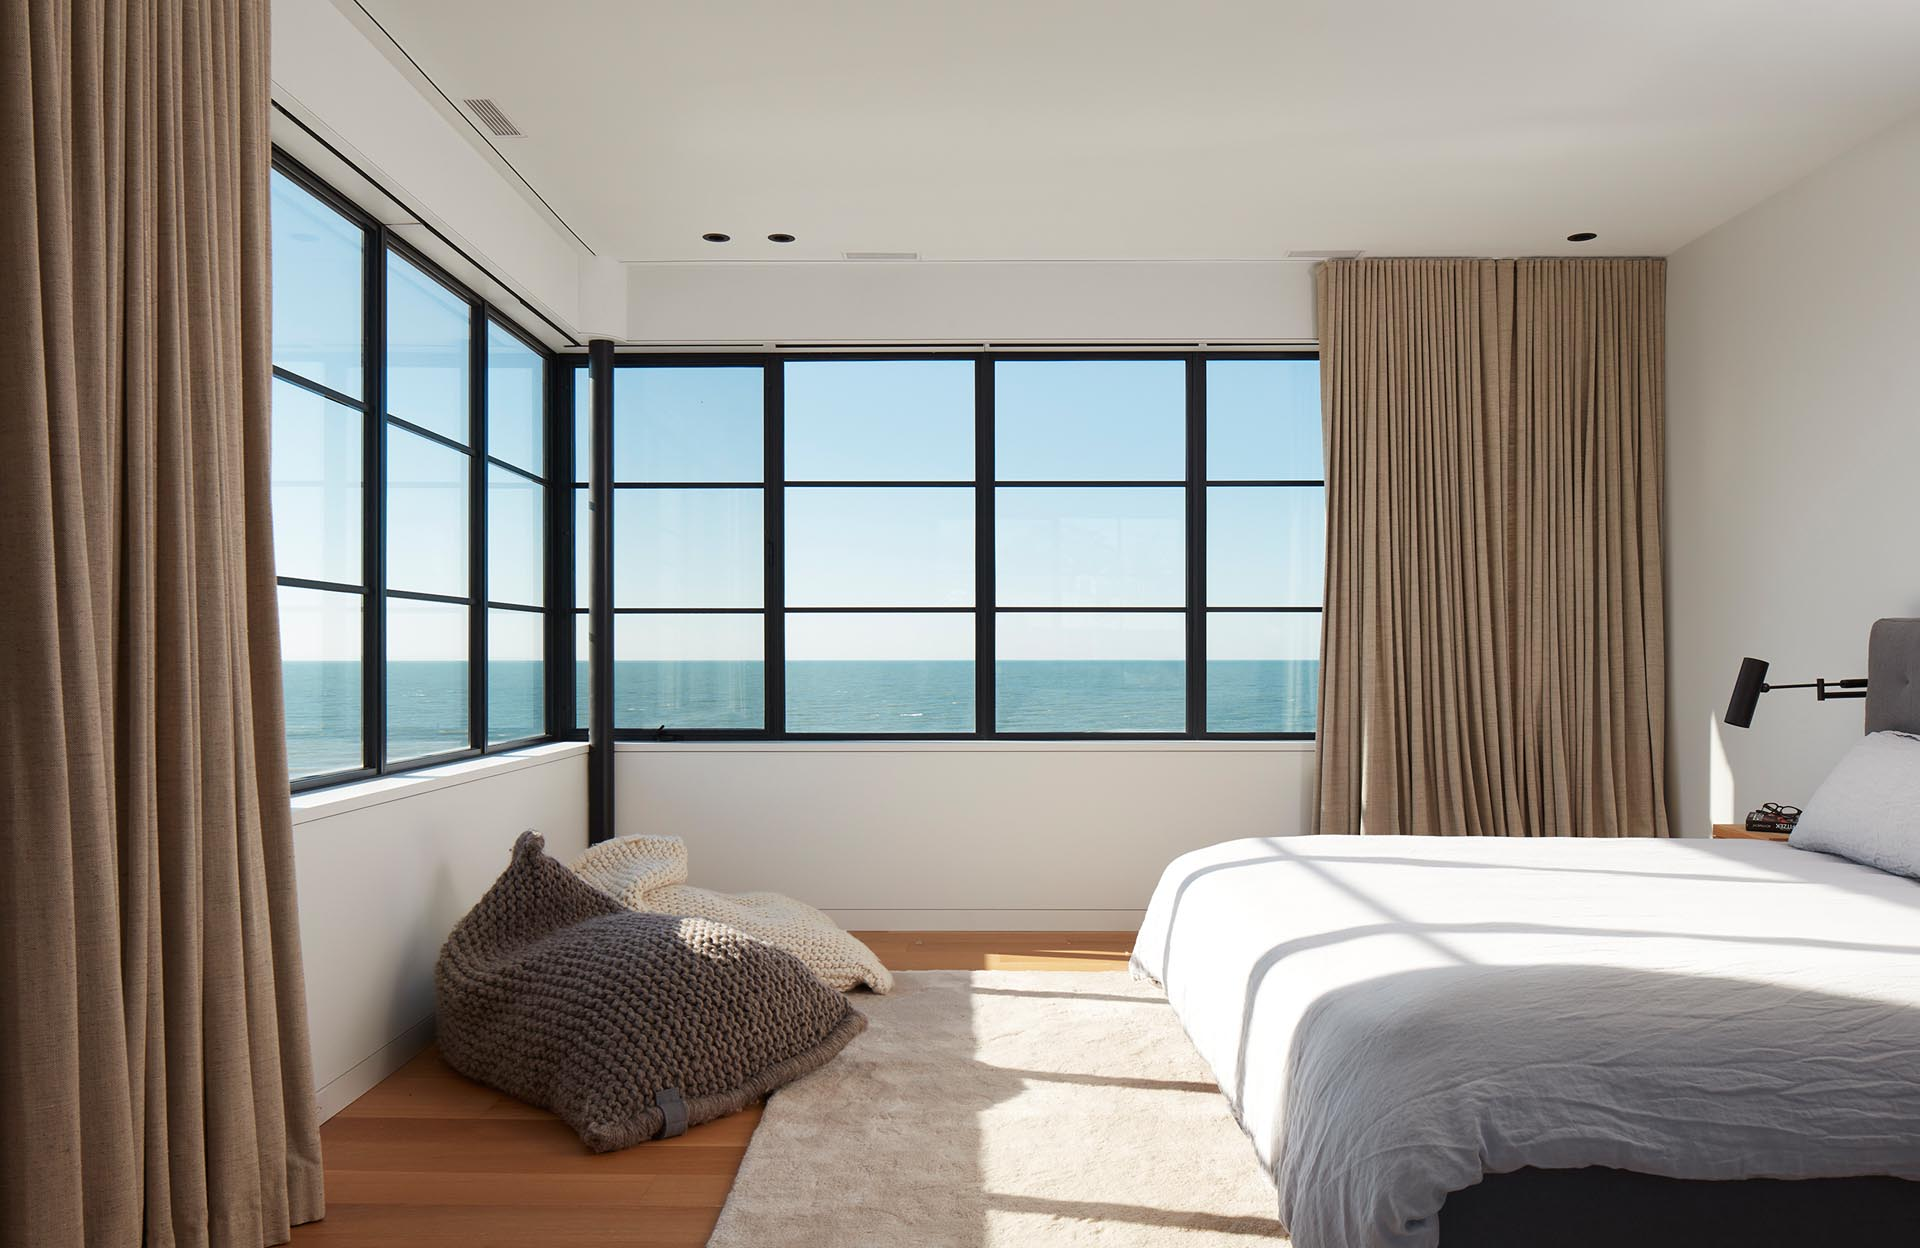 In this modern bedroom, the black-framed windows wrap around the corner of the bedroom, flooding the room with natural light during the day.